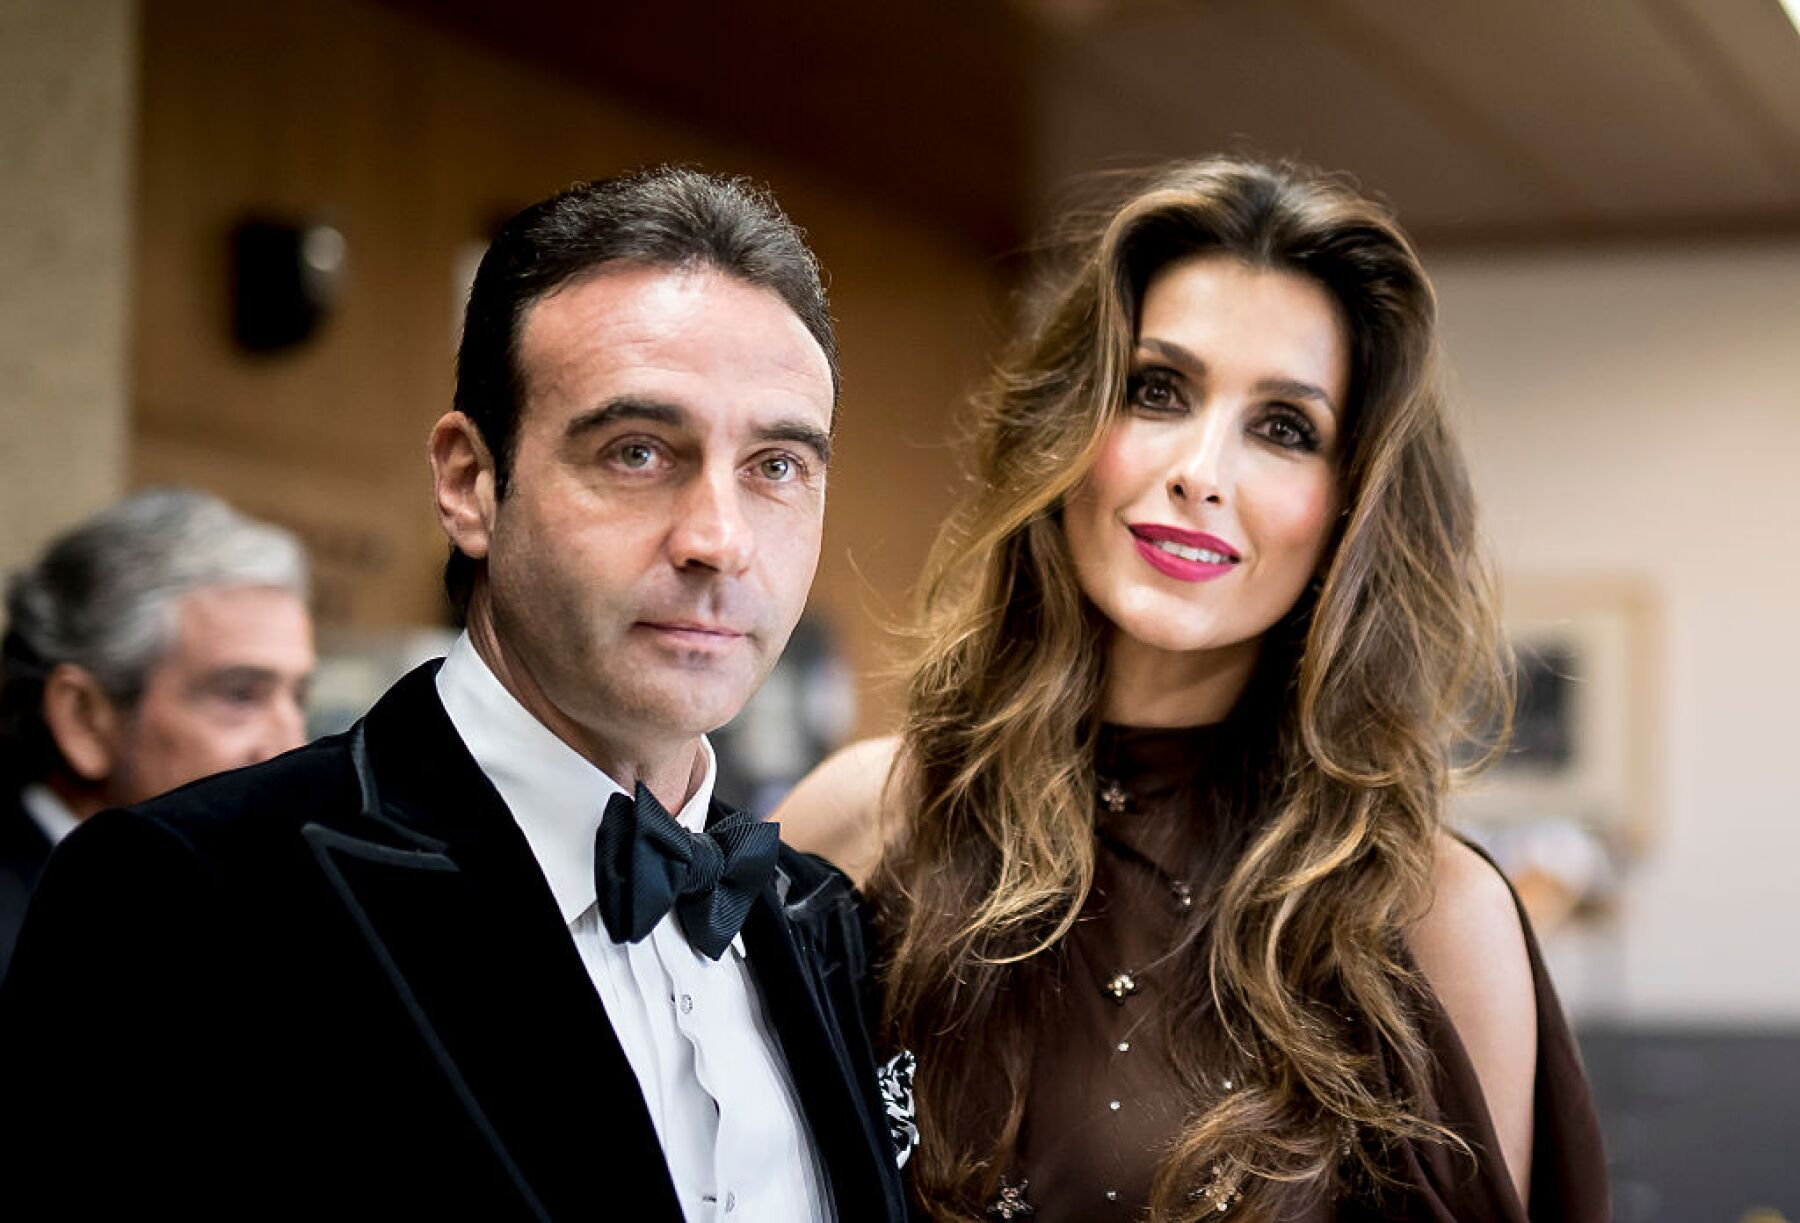 Spanish Royals Attend Official Dinner With 'Mariano De Cavia', Luca De Tena' And 'Mingote' Award's Winners